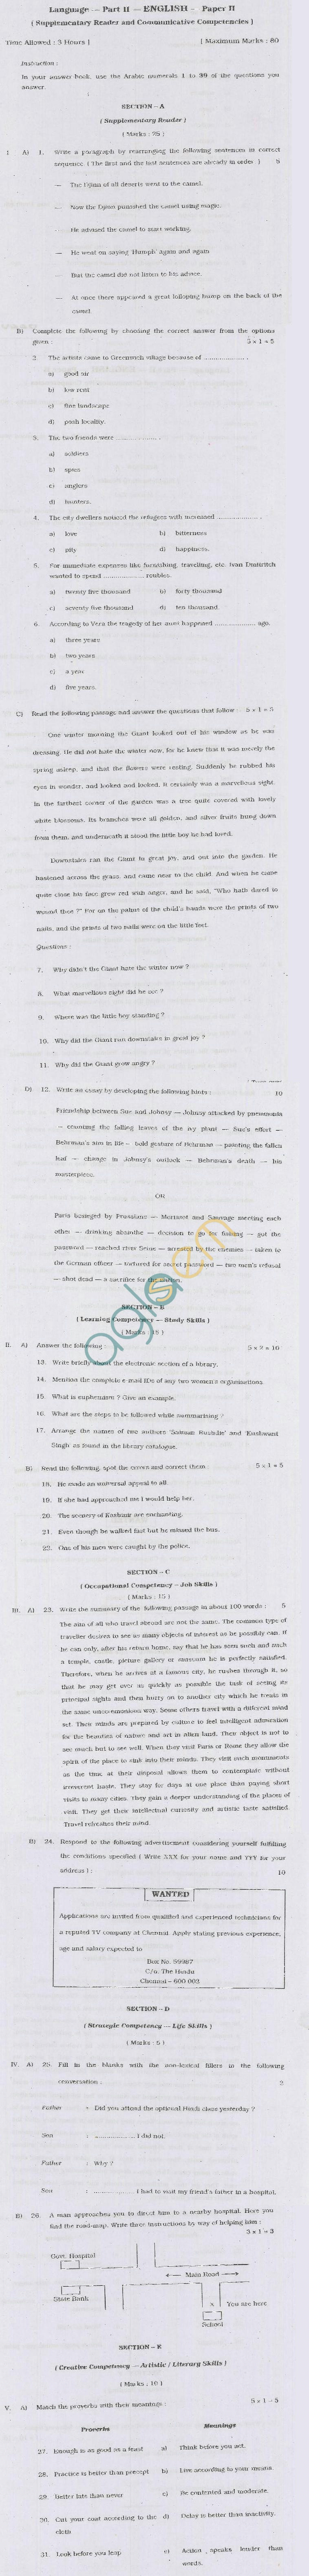 TN Board Higher Secondary (Plus 2)EnglishQuestion PapersSeptember 2011